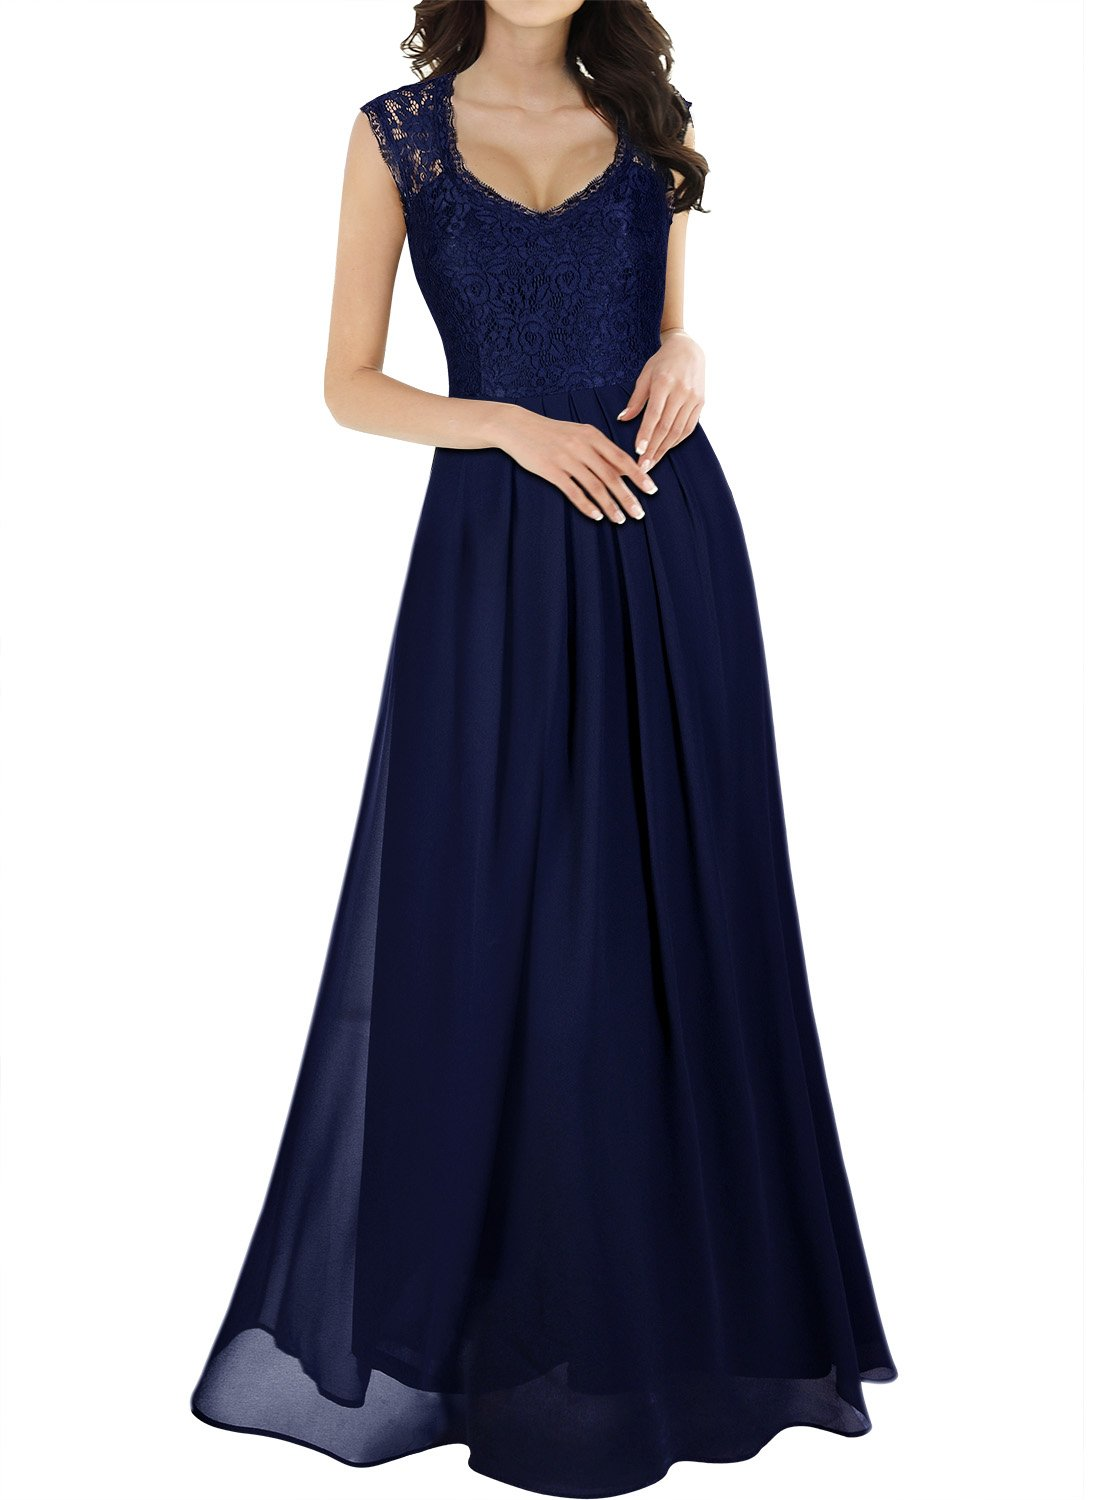 Prom Dresses - Womens Strapless Asymmetric Slit Front Evening Party Wedding Maxi Dress